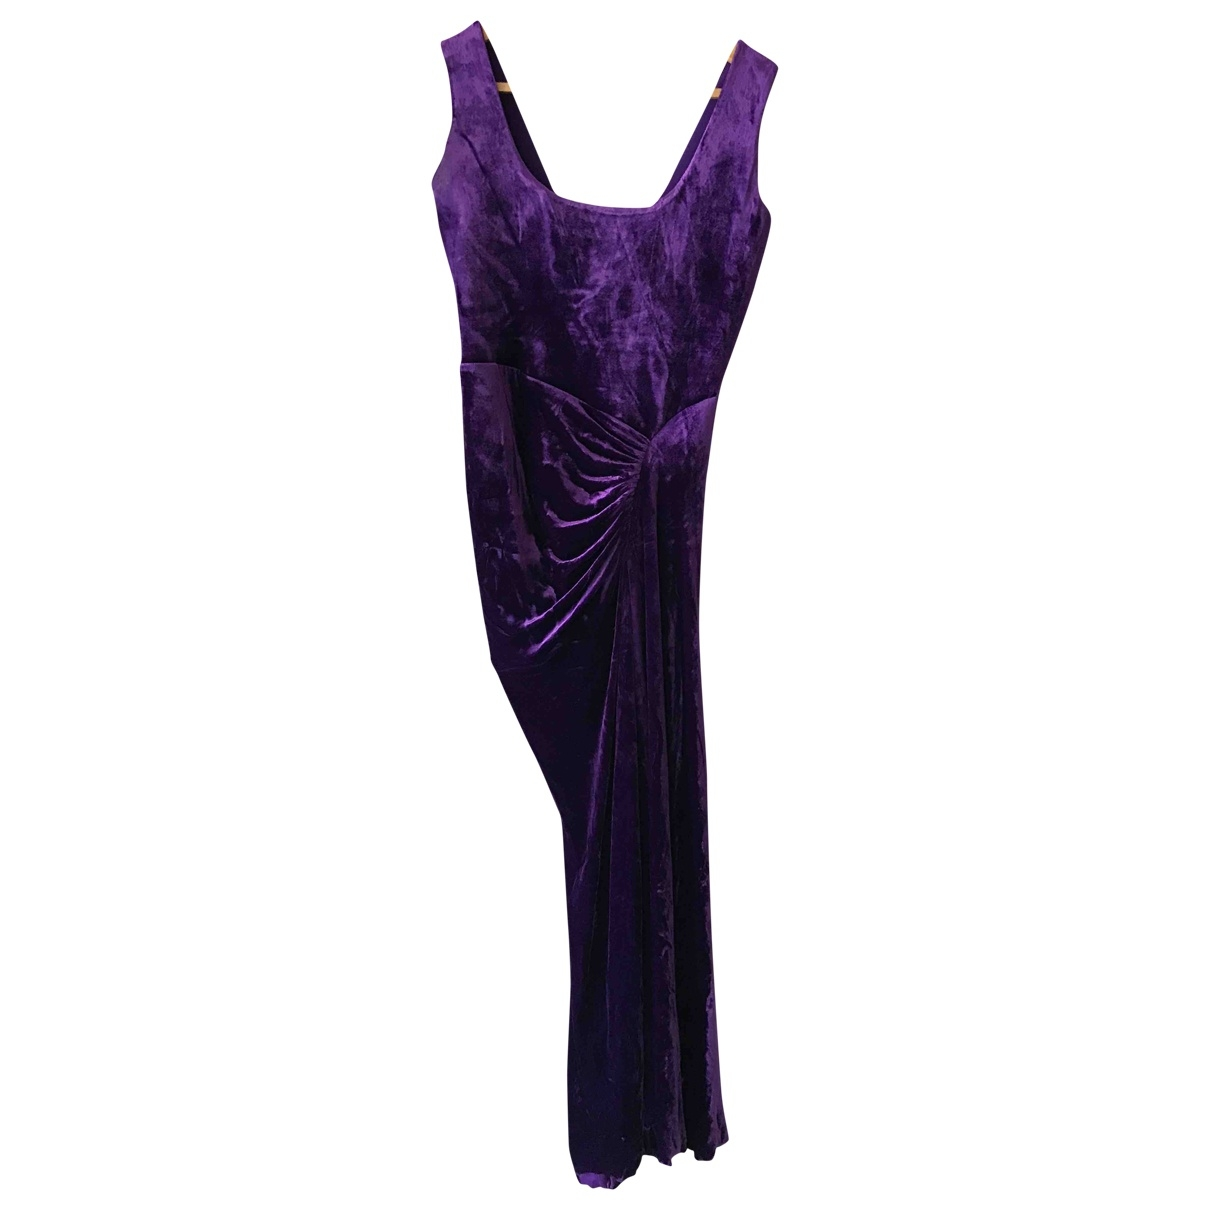 Herve L Leroux \N Purple dress for Women 44 FR